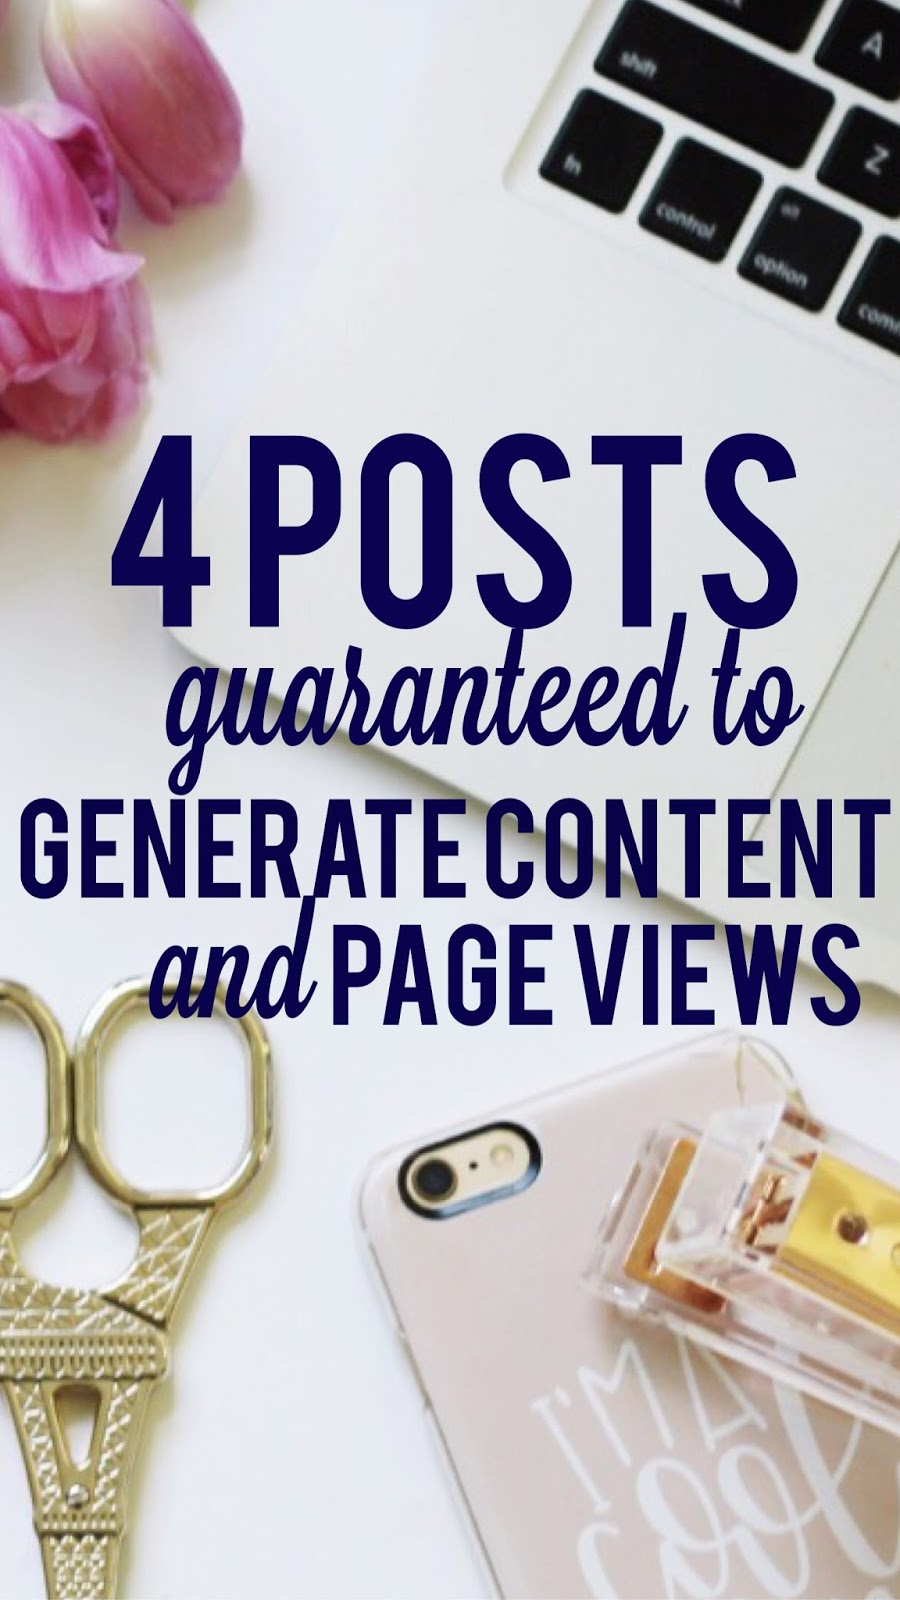 4 Posts Guaranteed to Generate Content (and page views!)